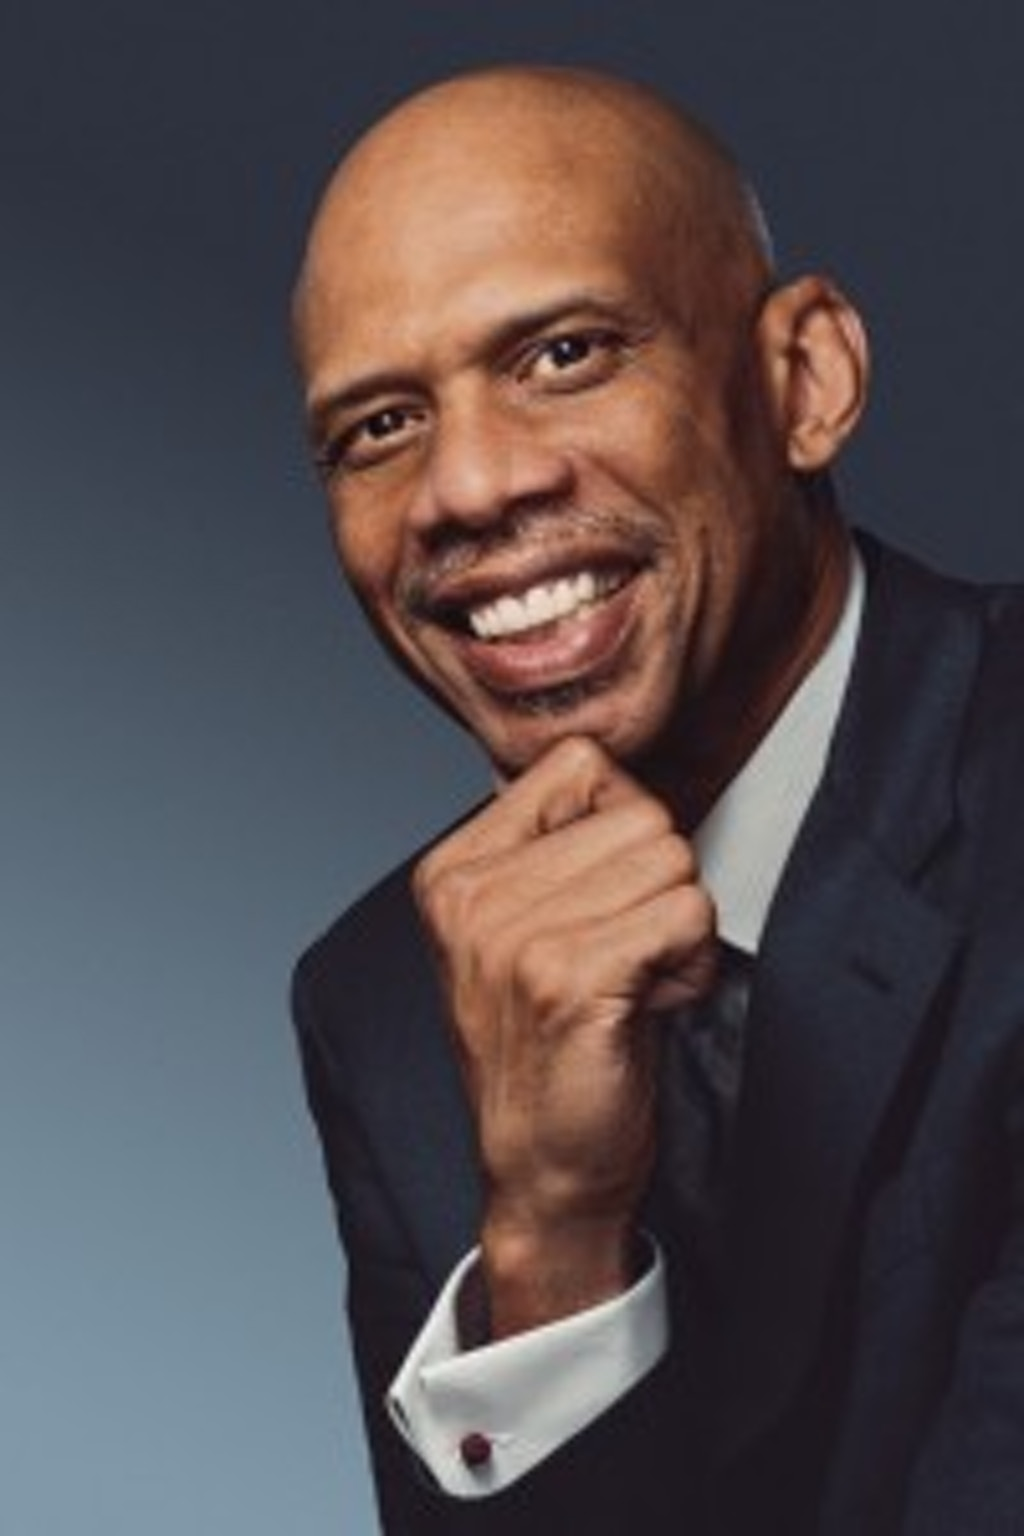 NEW VOICES: Kareem Abdul-Jabbar Urges Abolition of Death Penalty